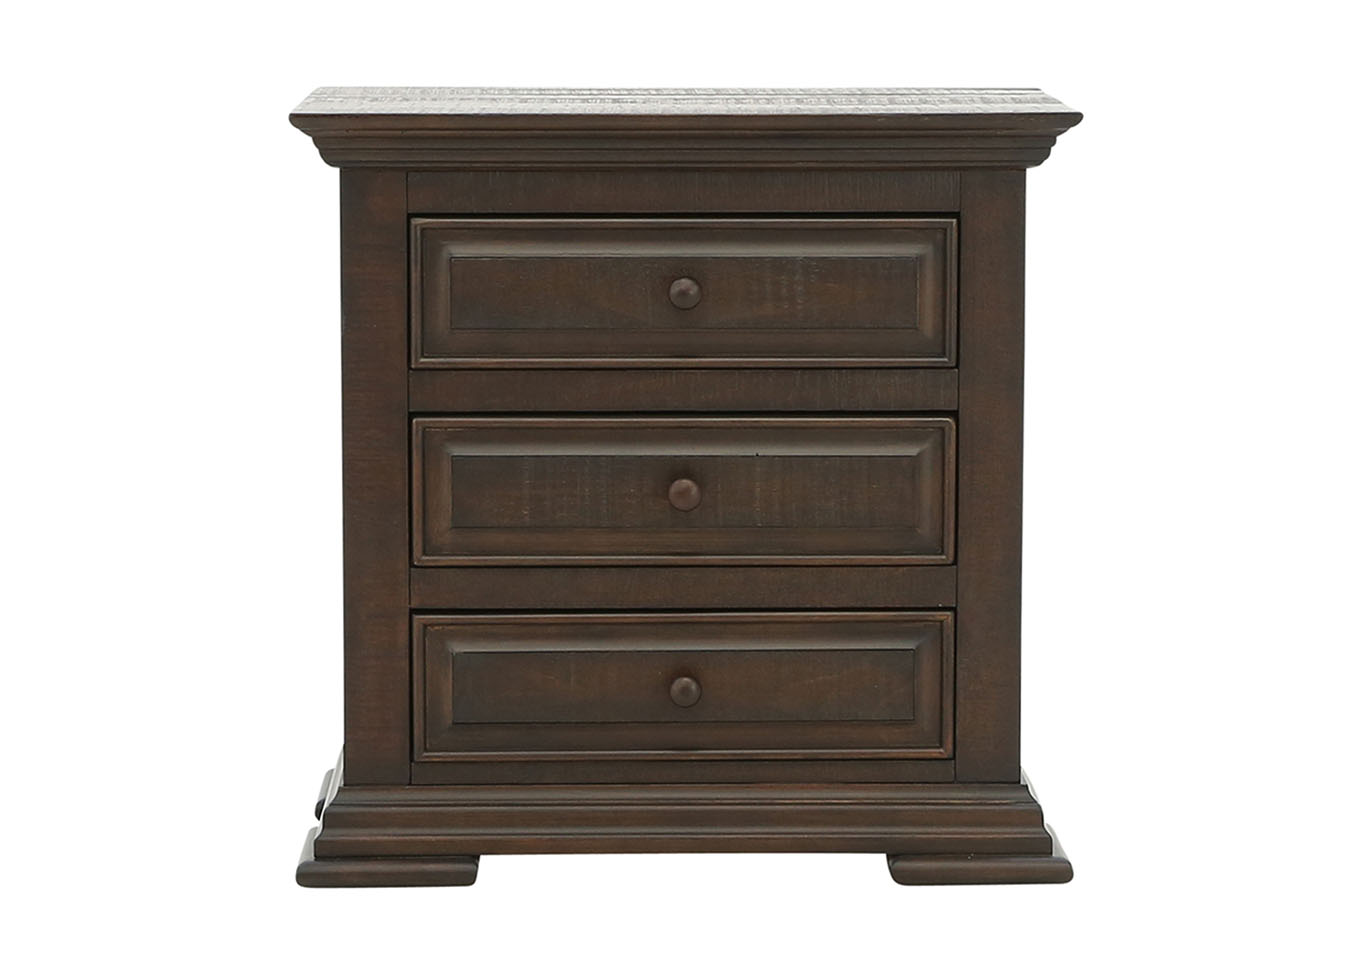 ROSLINDALE TOBACCO NIGHTSTAND,LIFESTYLE FURNITURE